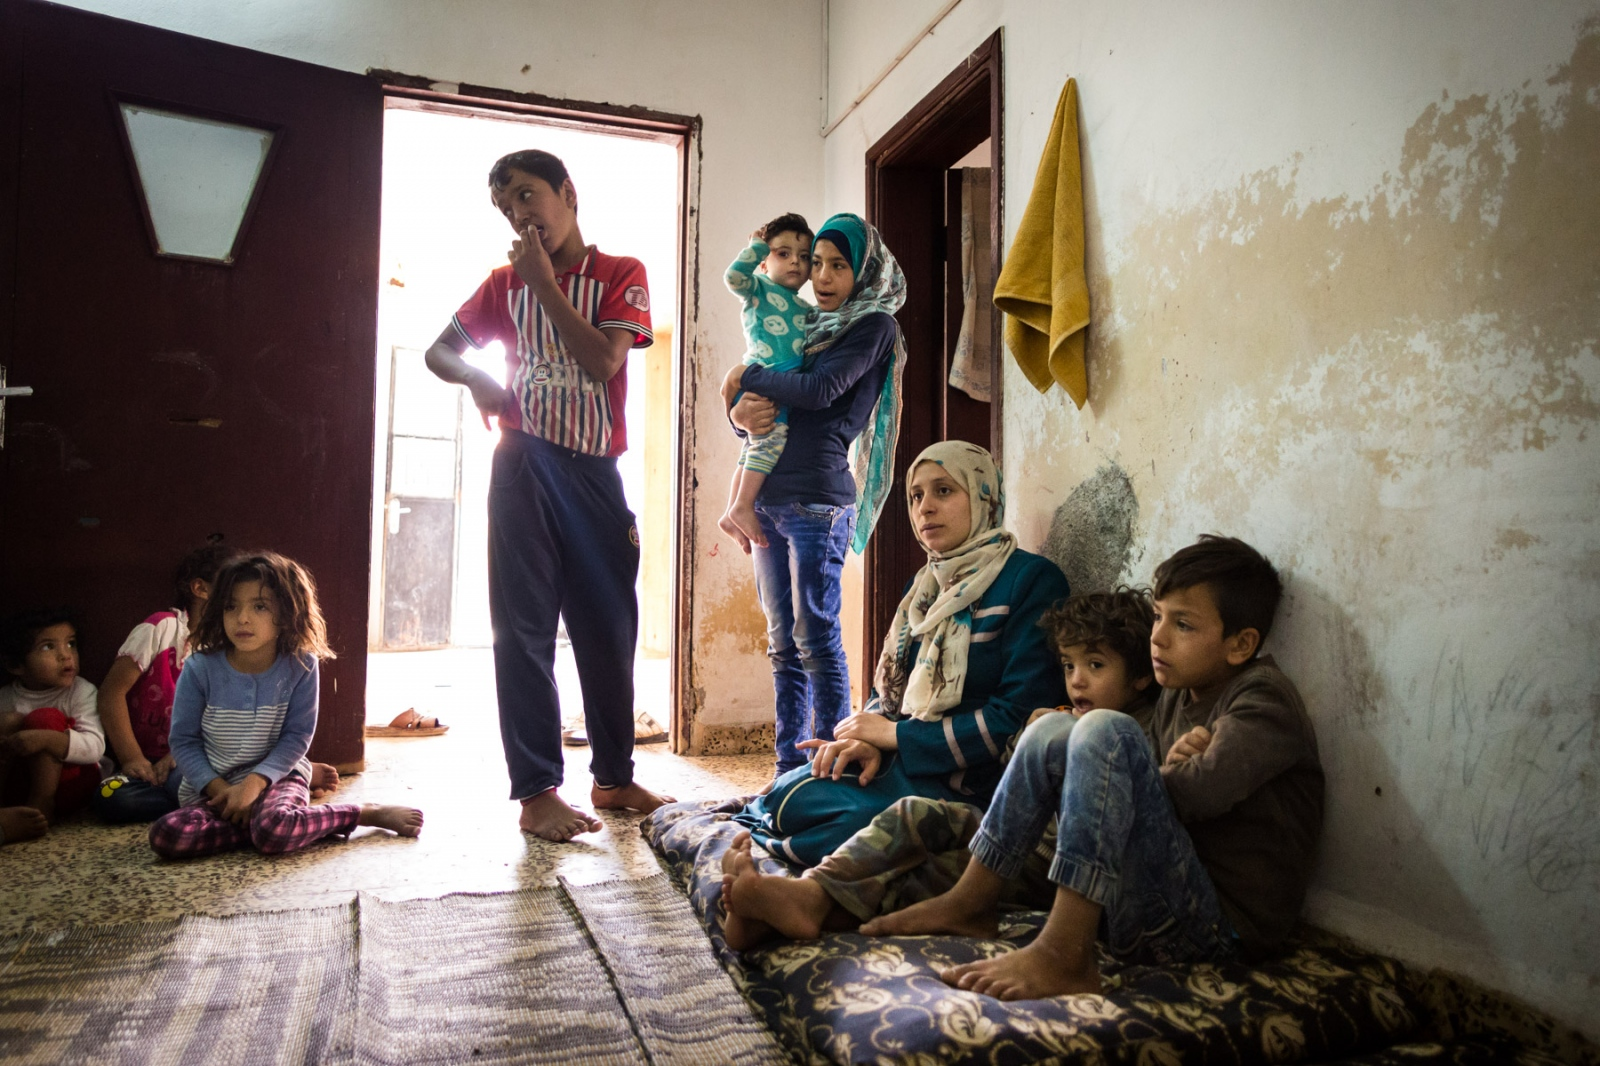 Abu Mohammed's family, originally from Syria, sits at home in Mafraq, Jordan, on Nov. 4, 2016. This house has about 15 people living in two rooms with his second wife; he has another household with his first wife, also with about 15 people.